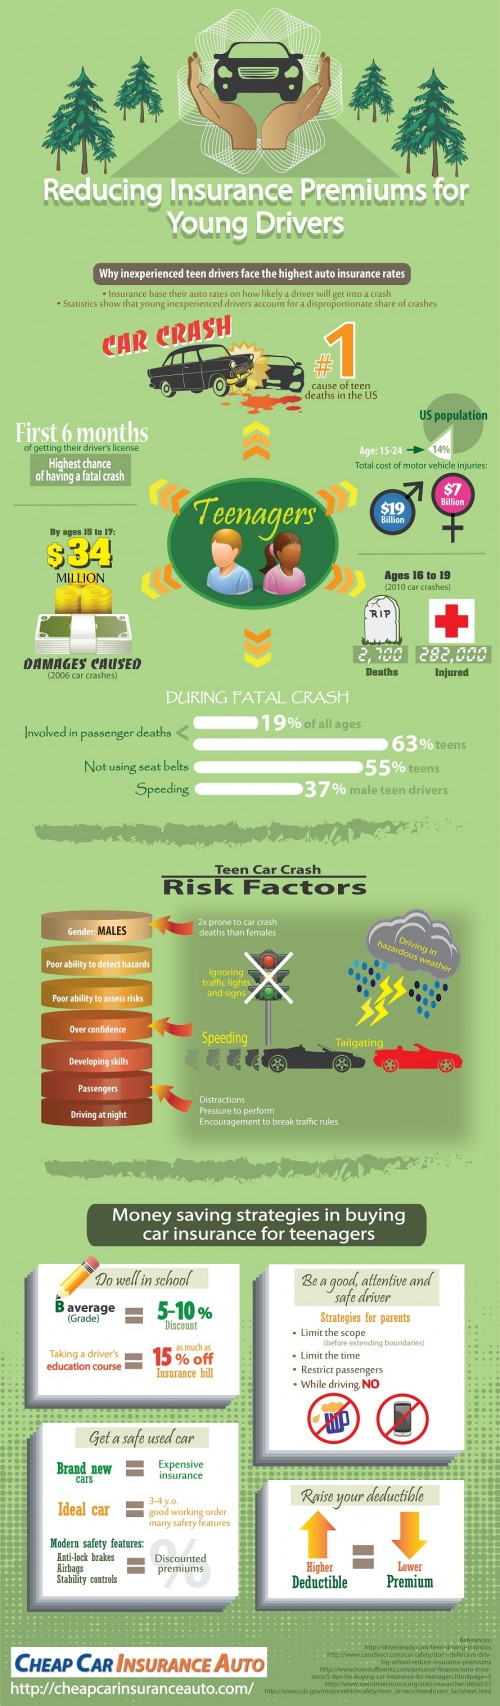 Car Insurance For Young Drivers Infographic Car